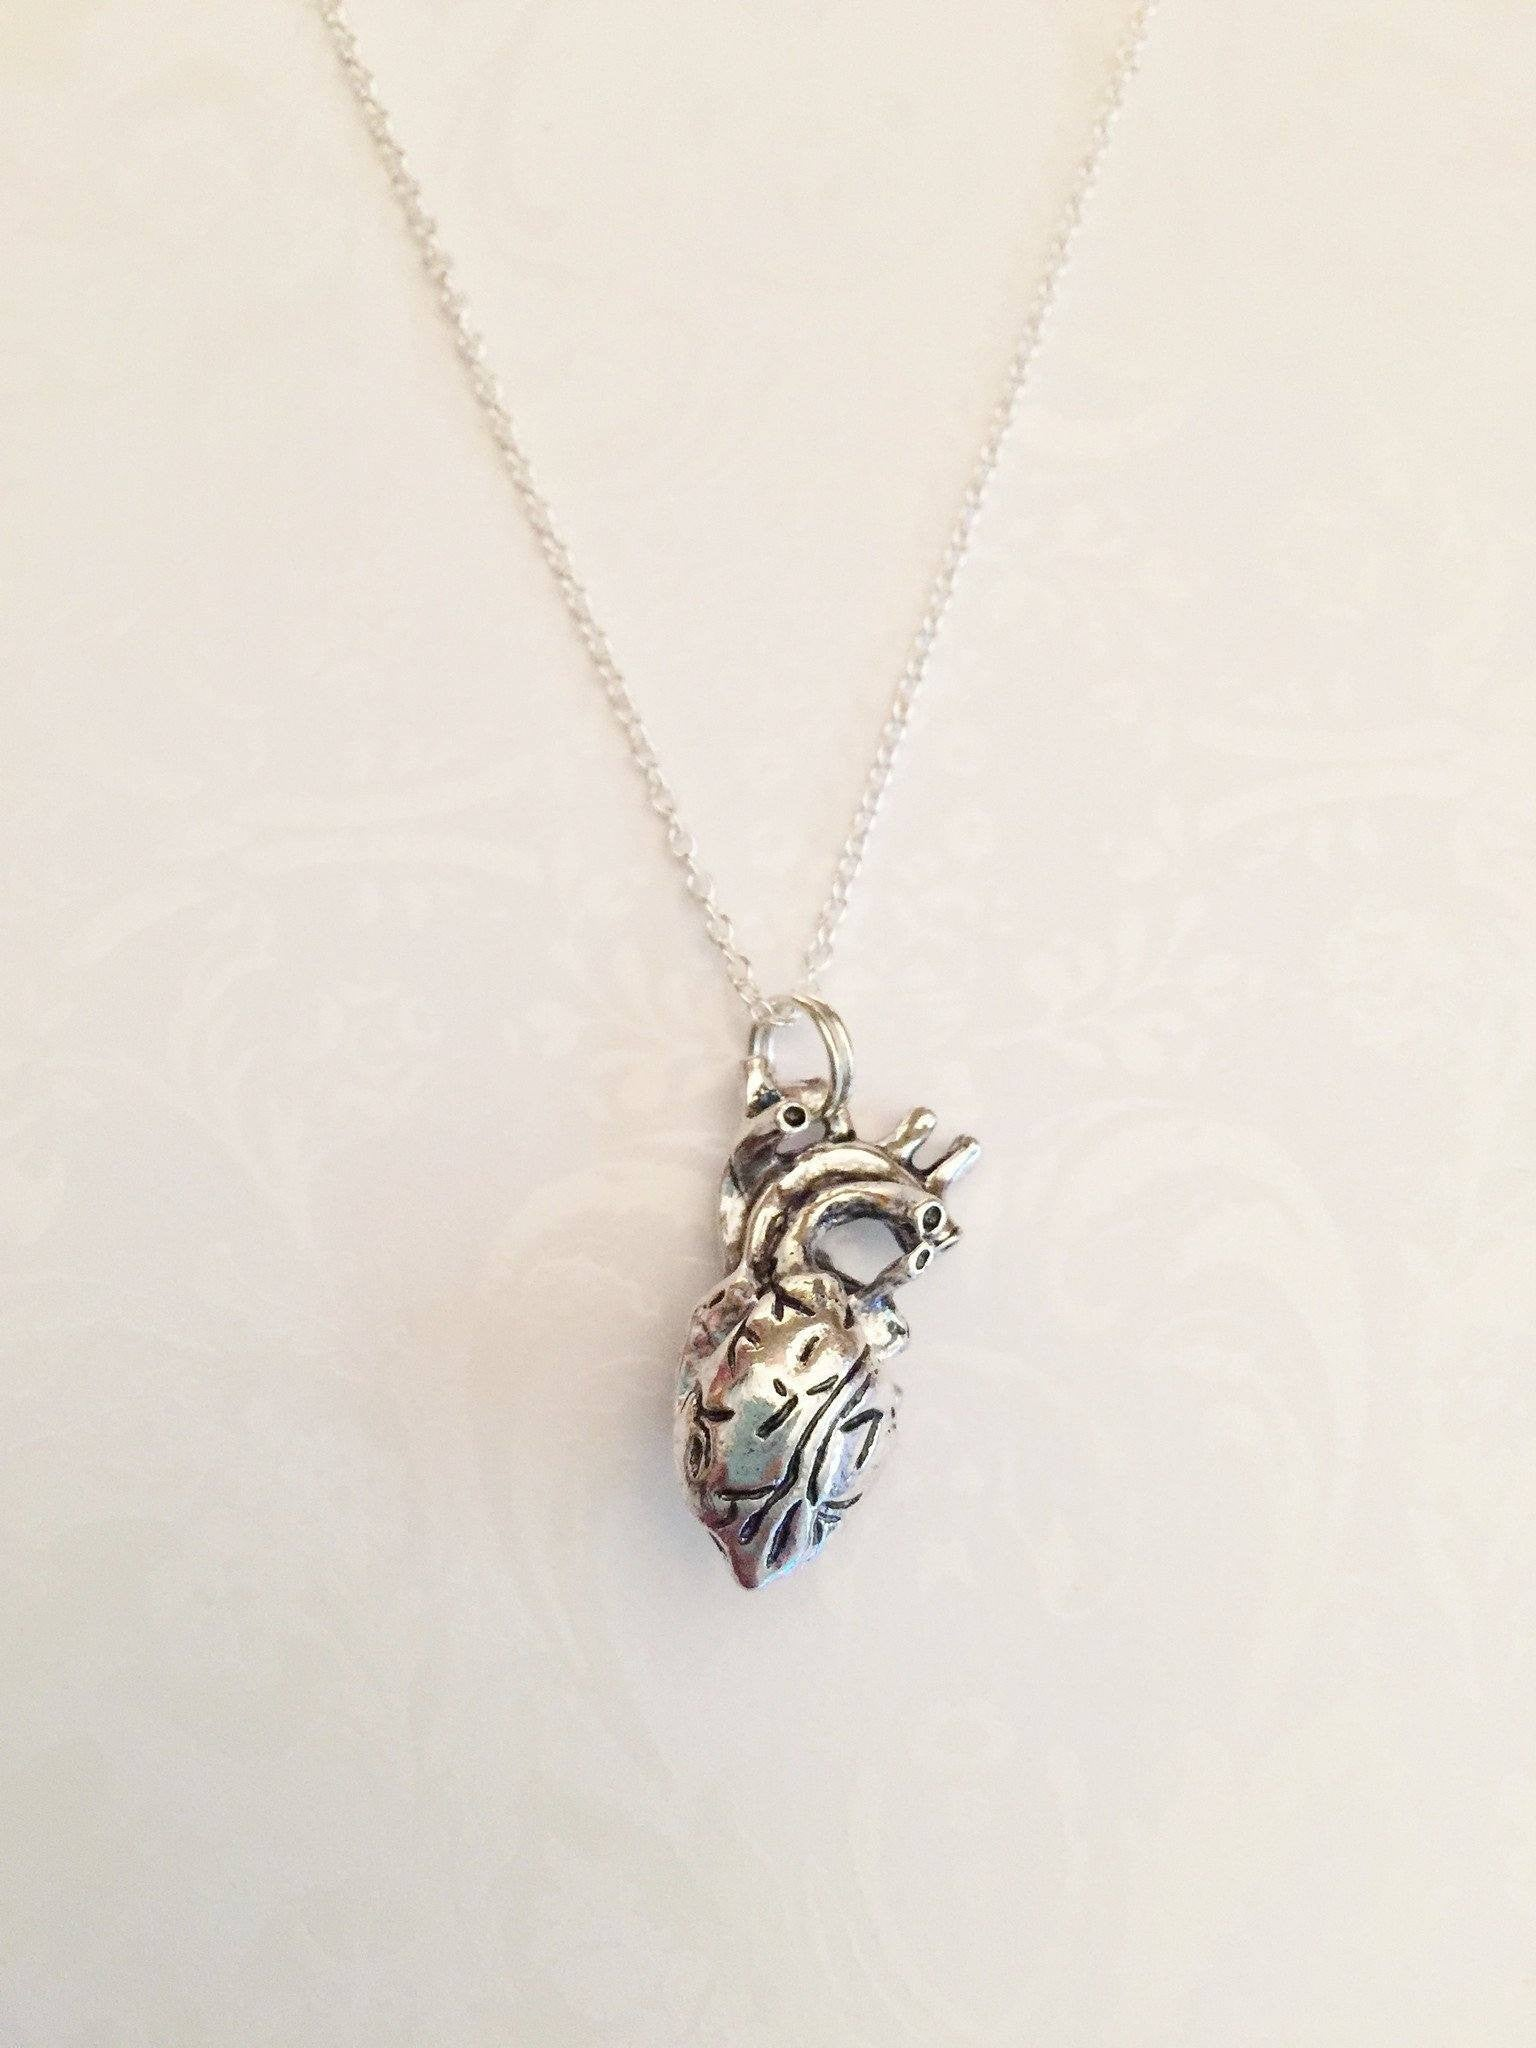 Human Anatomical Heart Necklace - Anomaly Creations & Designs  - 1